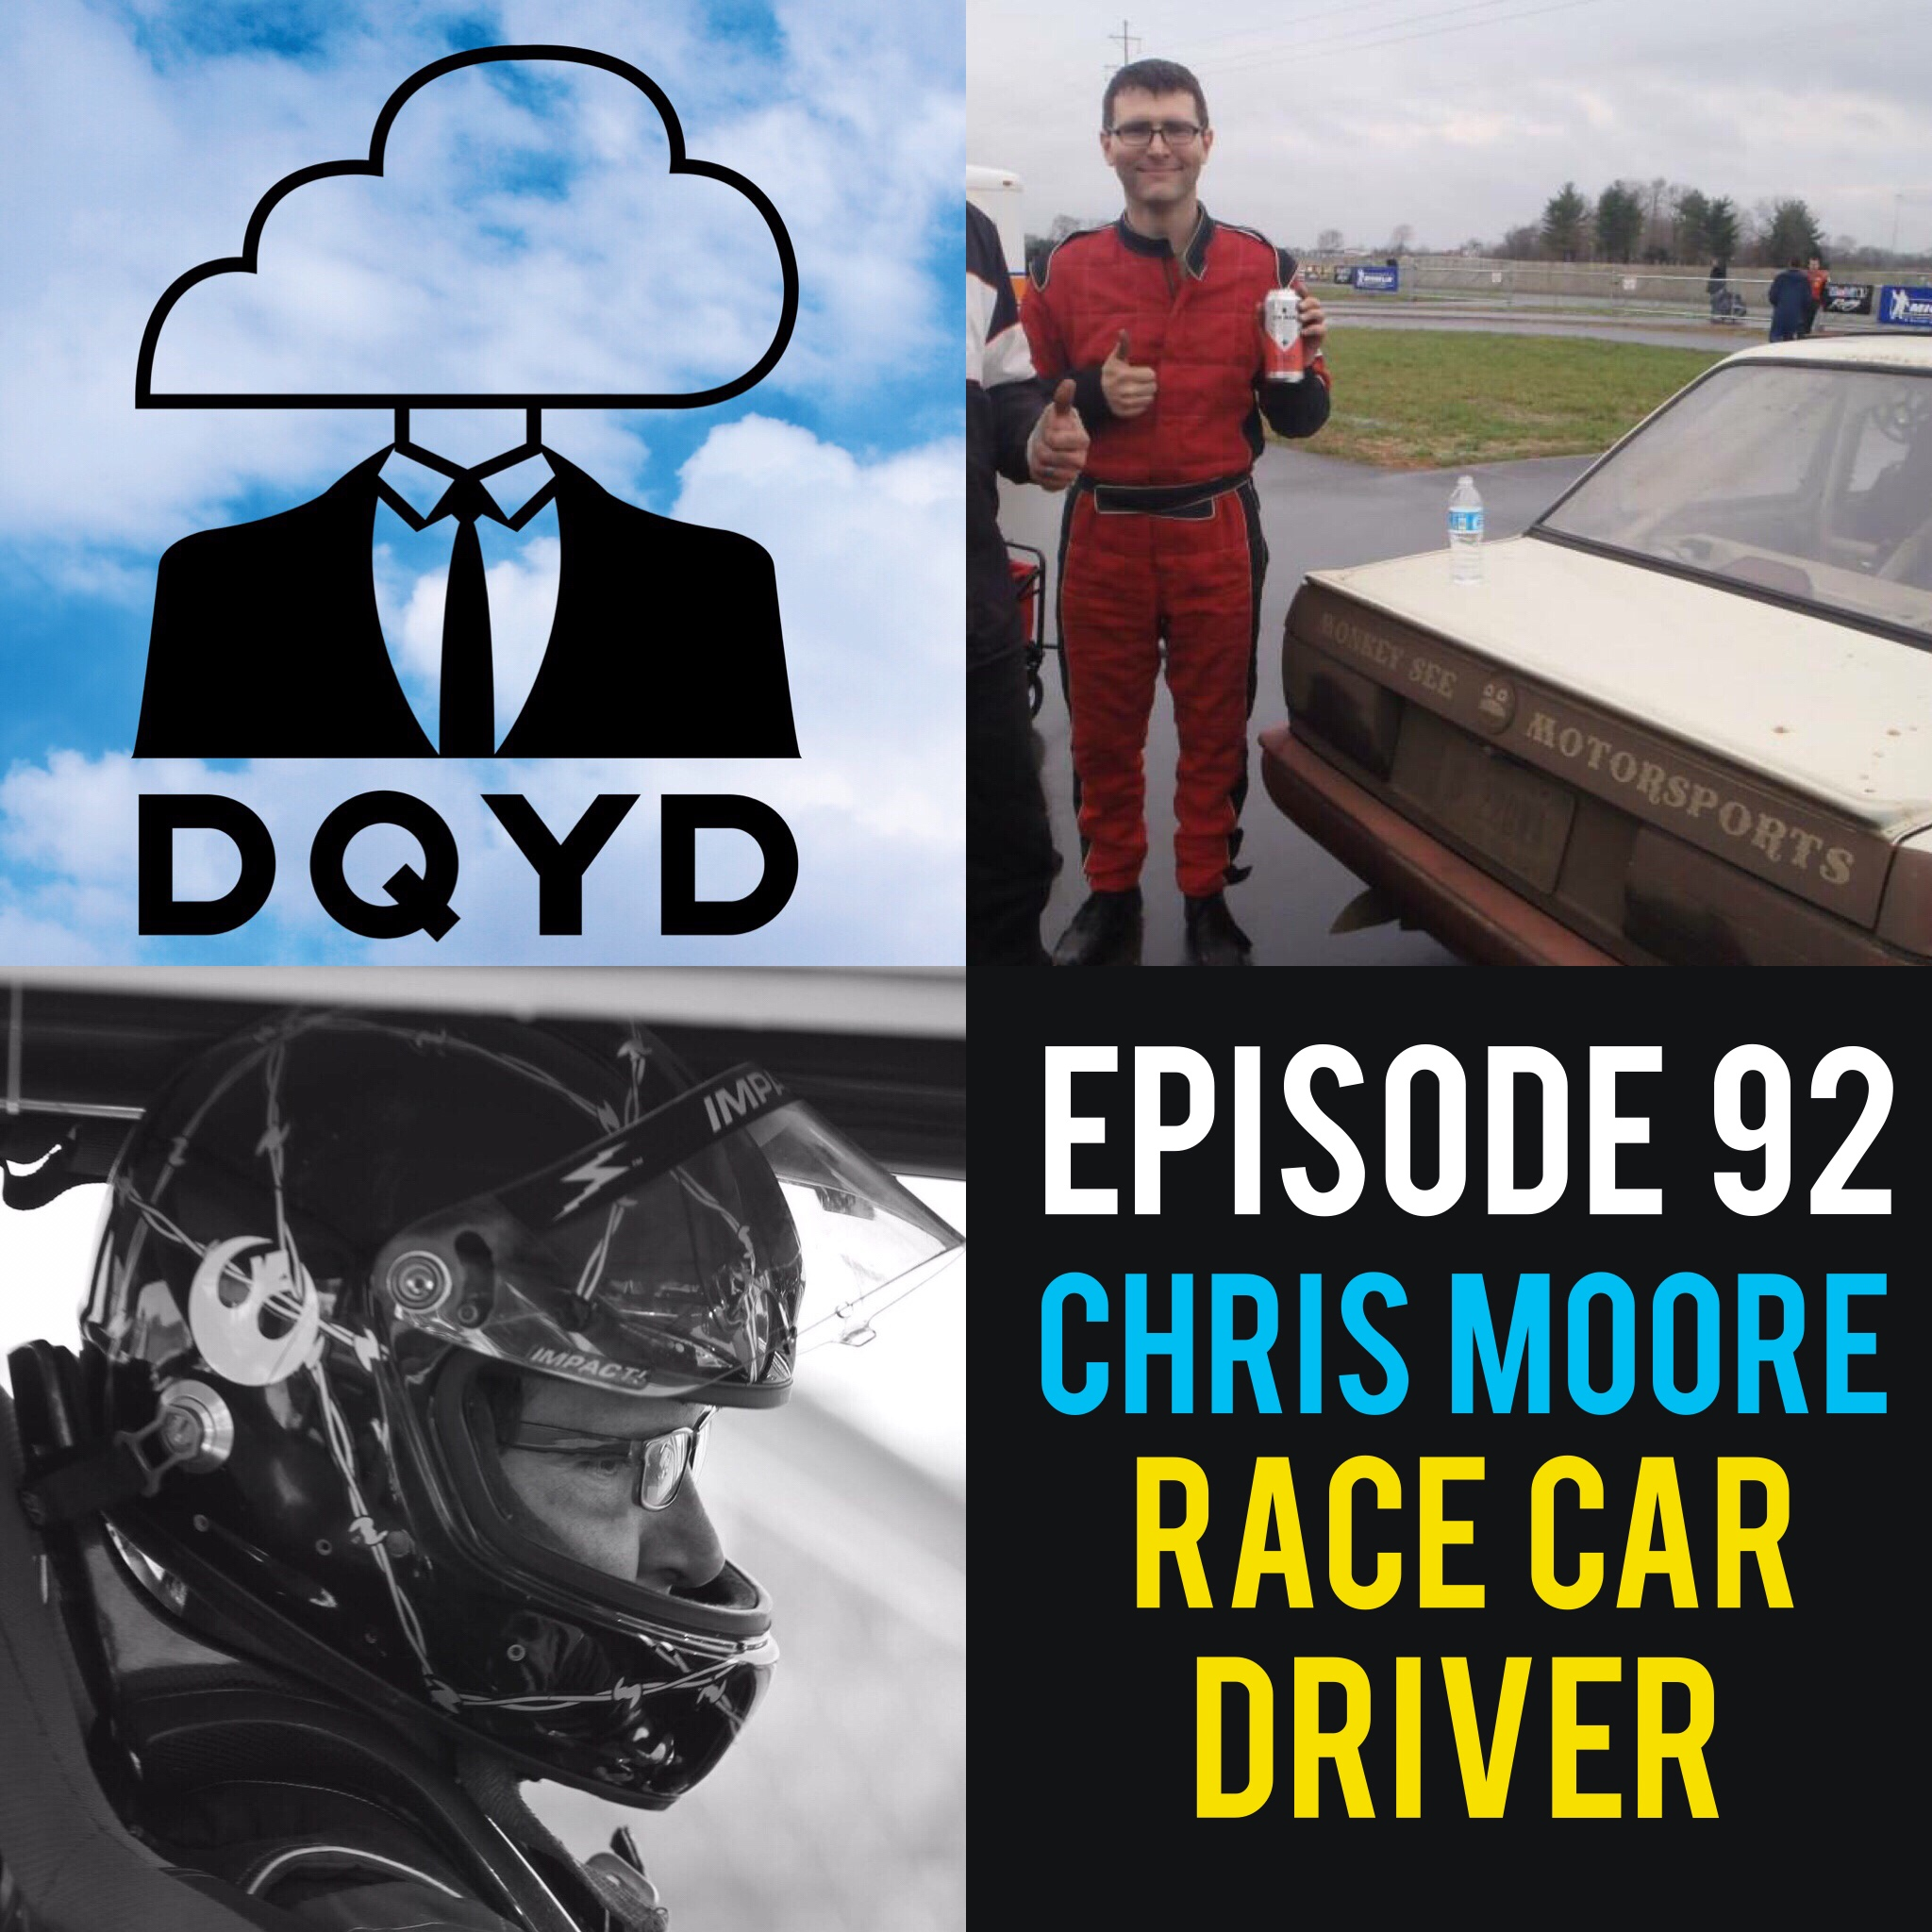 """Episode 92 with Race Car Driver: Chris Moore! From the garage to the track Chris Moore puts in tons of sweat, time and hard work into his love of racing. He breaks down the process of how to step behind the wheel and does a wonderful job explaining the euphoria that comes with it. Check out his team """"Lambkey Motorghini Racing""""  https://www.facebook.com/Lambkey-Motorghini-Racing-227817943951221/?timeline_context_item_type=intro_card_work&timeline_context_item_source=1635197308&pnref=lhc   Song of the week is """"No More"""" by the wonderful Osiella! https://osiella.bandcamp.com/"""